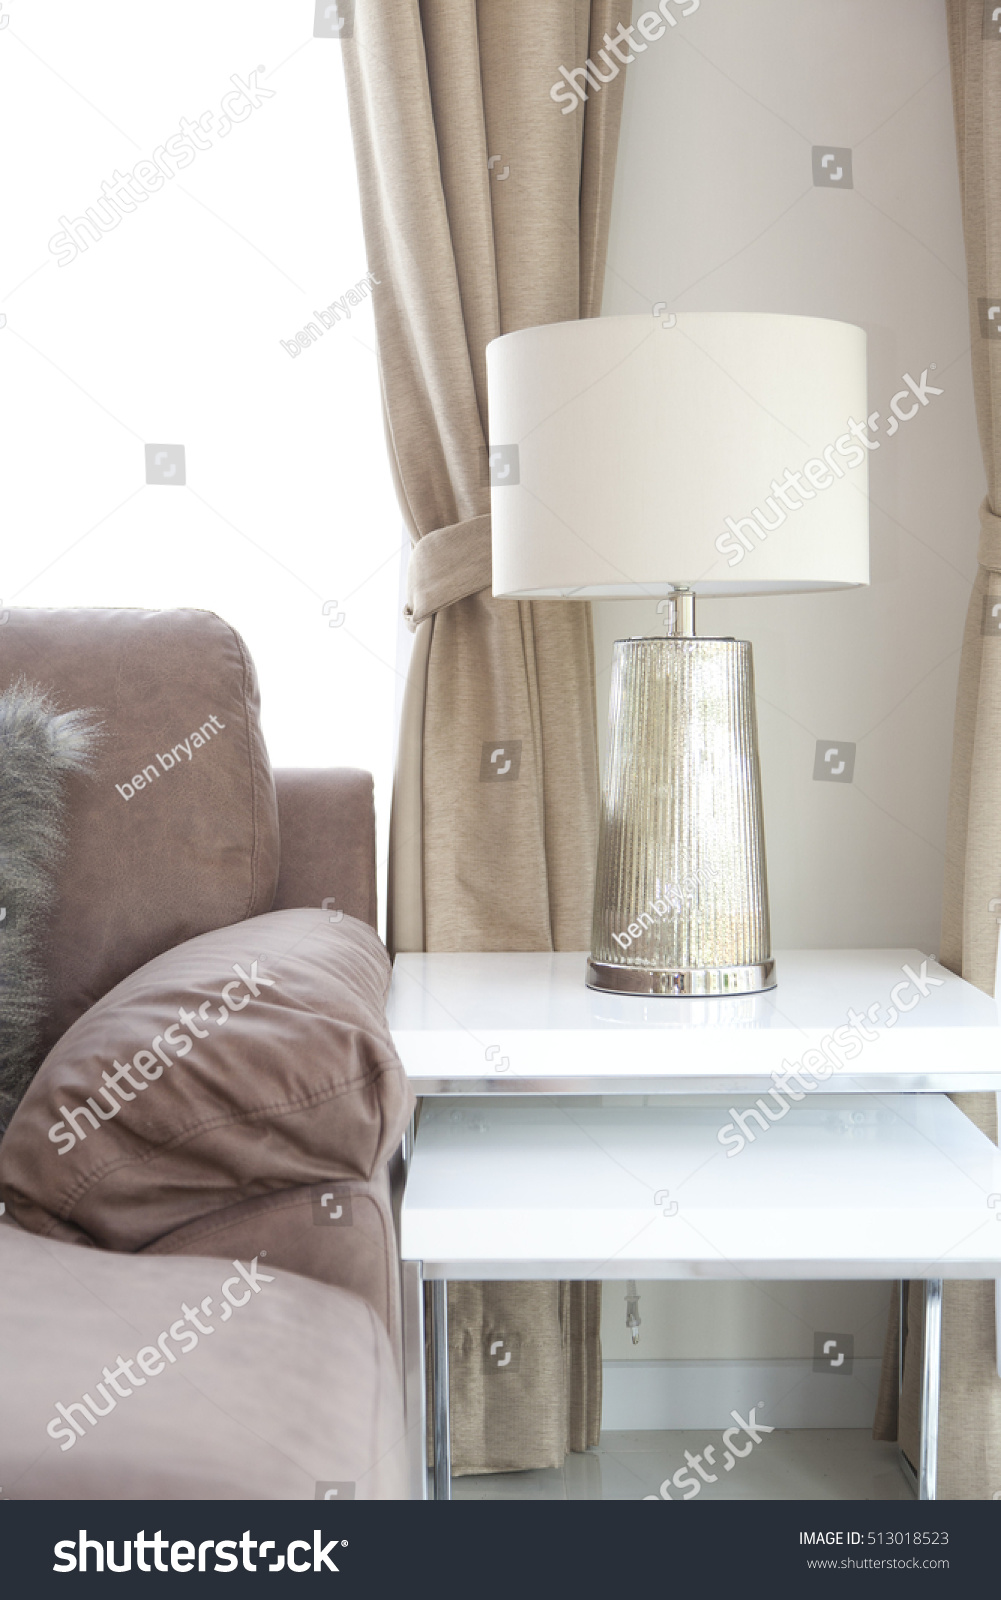 Silver base table lamp living room stock photo royalty free silver base table lamp living room stock photo royalty free 513018523 shutterstock mozeypictures